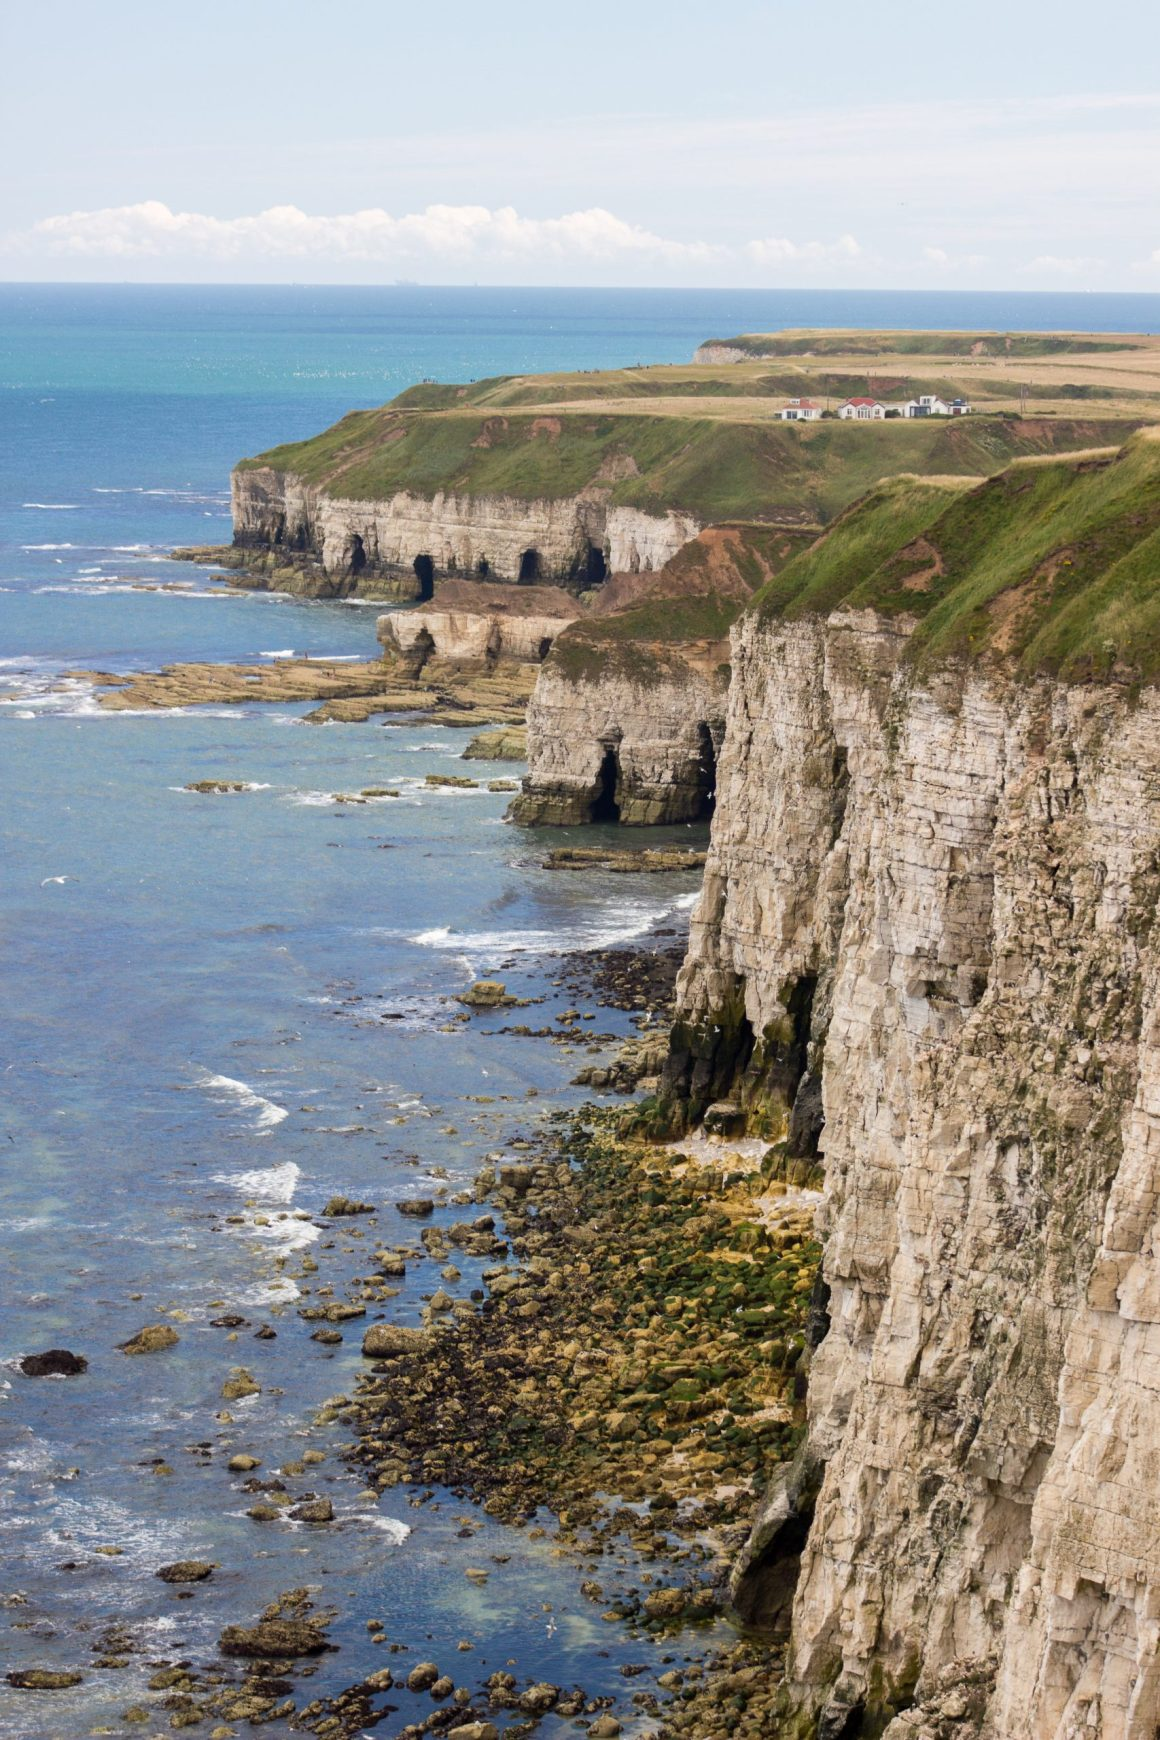 Sentier de Flamborough cliffs a Bempton cliffs